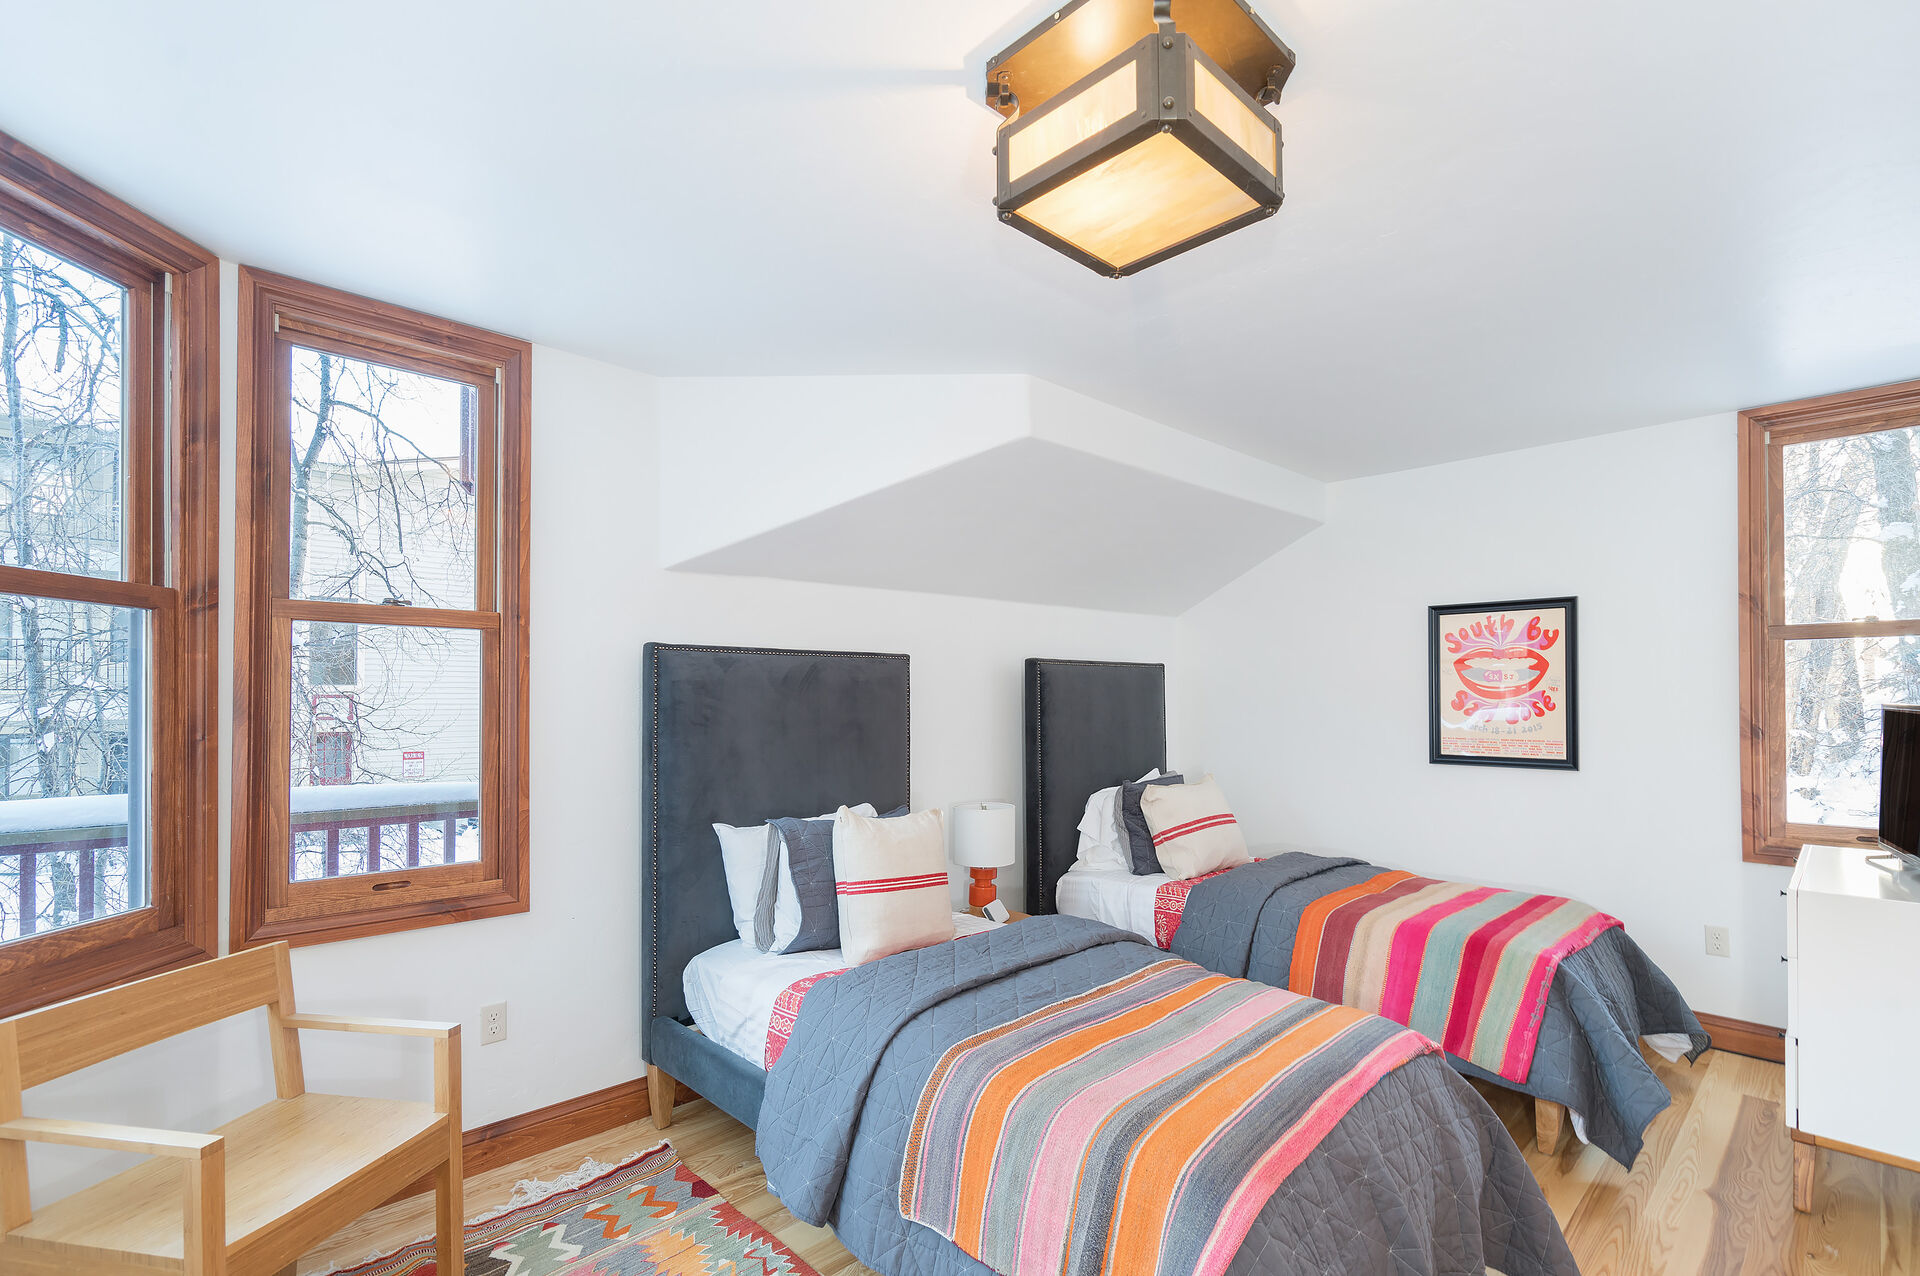 Bedroom with Two Beds, Drawer Dresser, Smart TV, and Chair